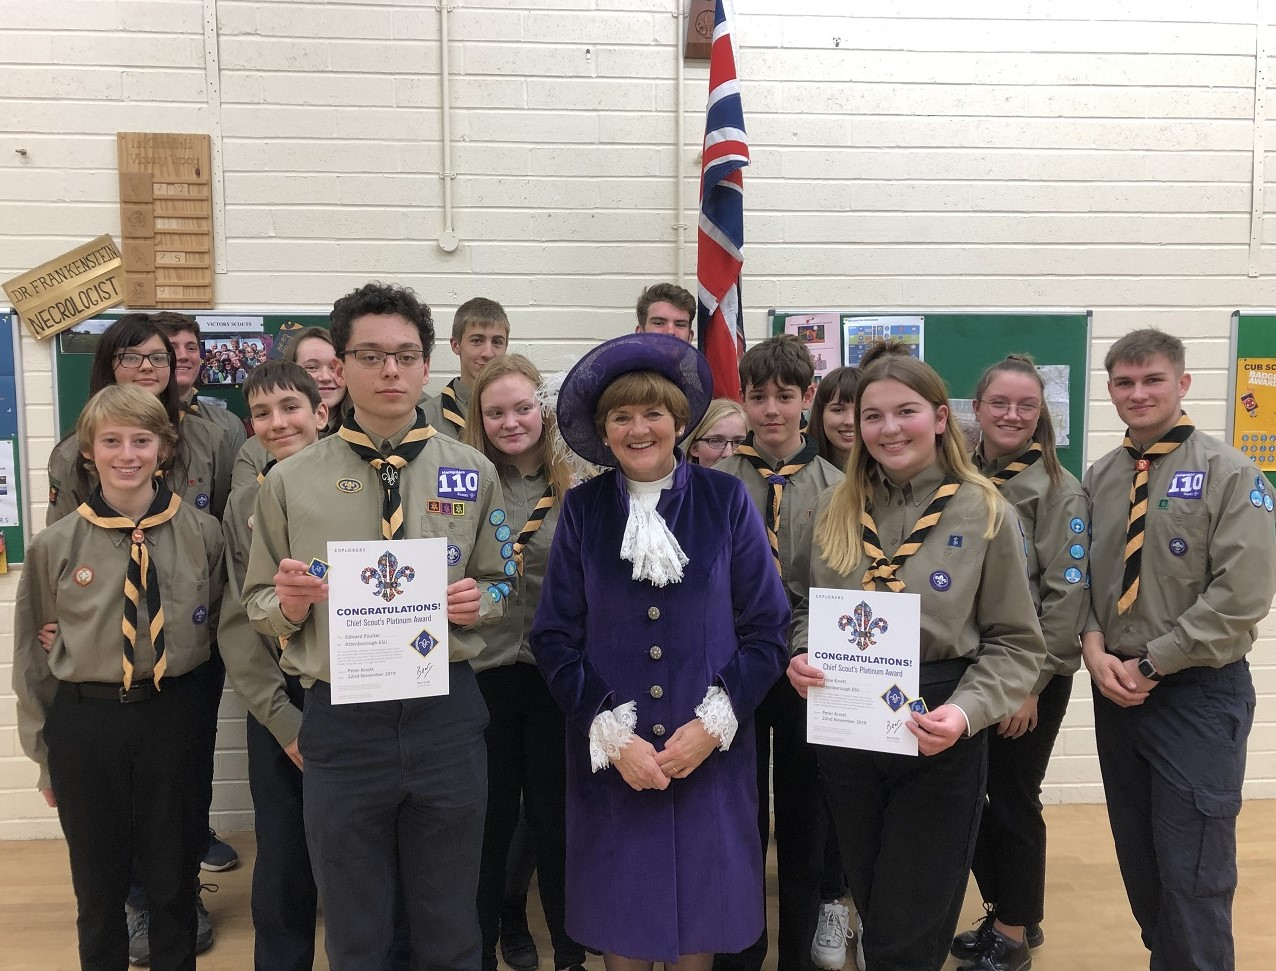 Platinum Awards for Clanfield Explorer Scouts